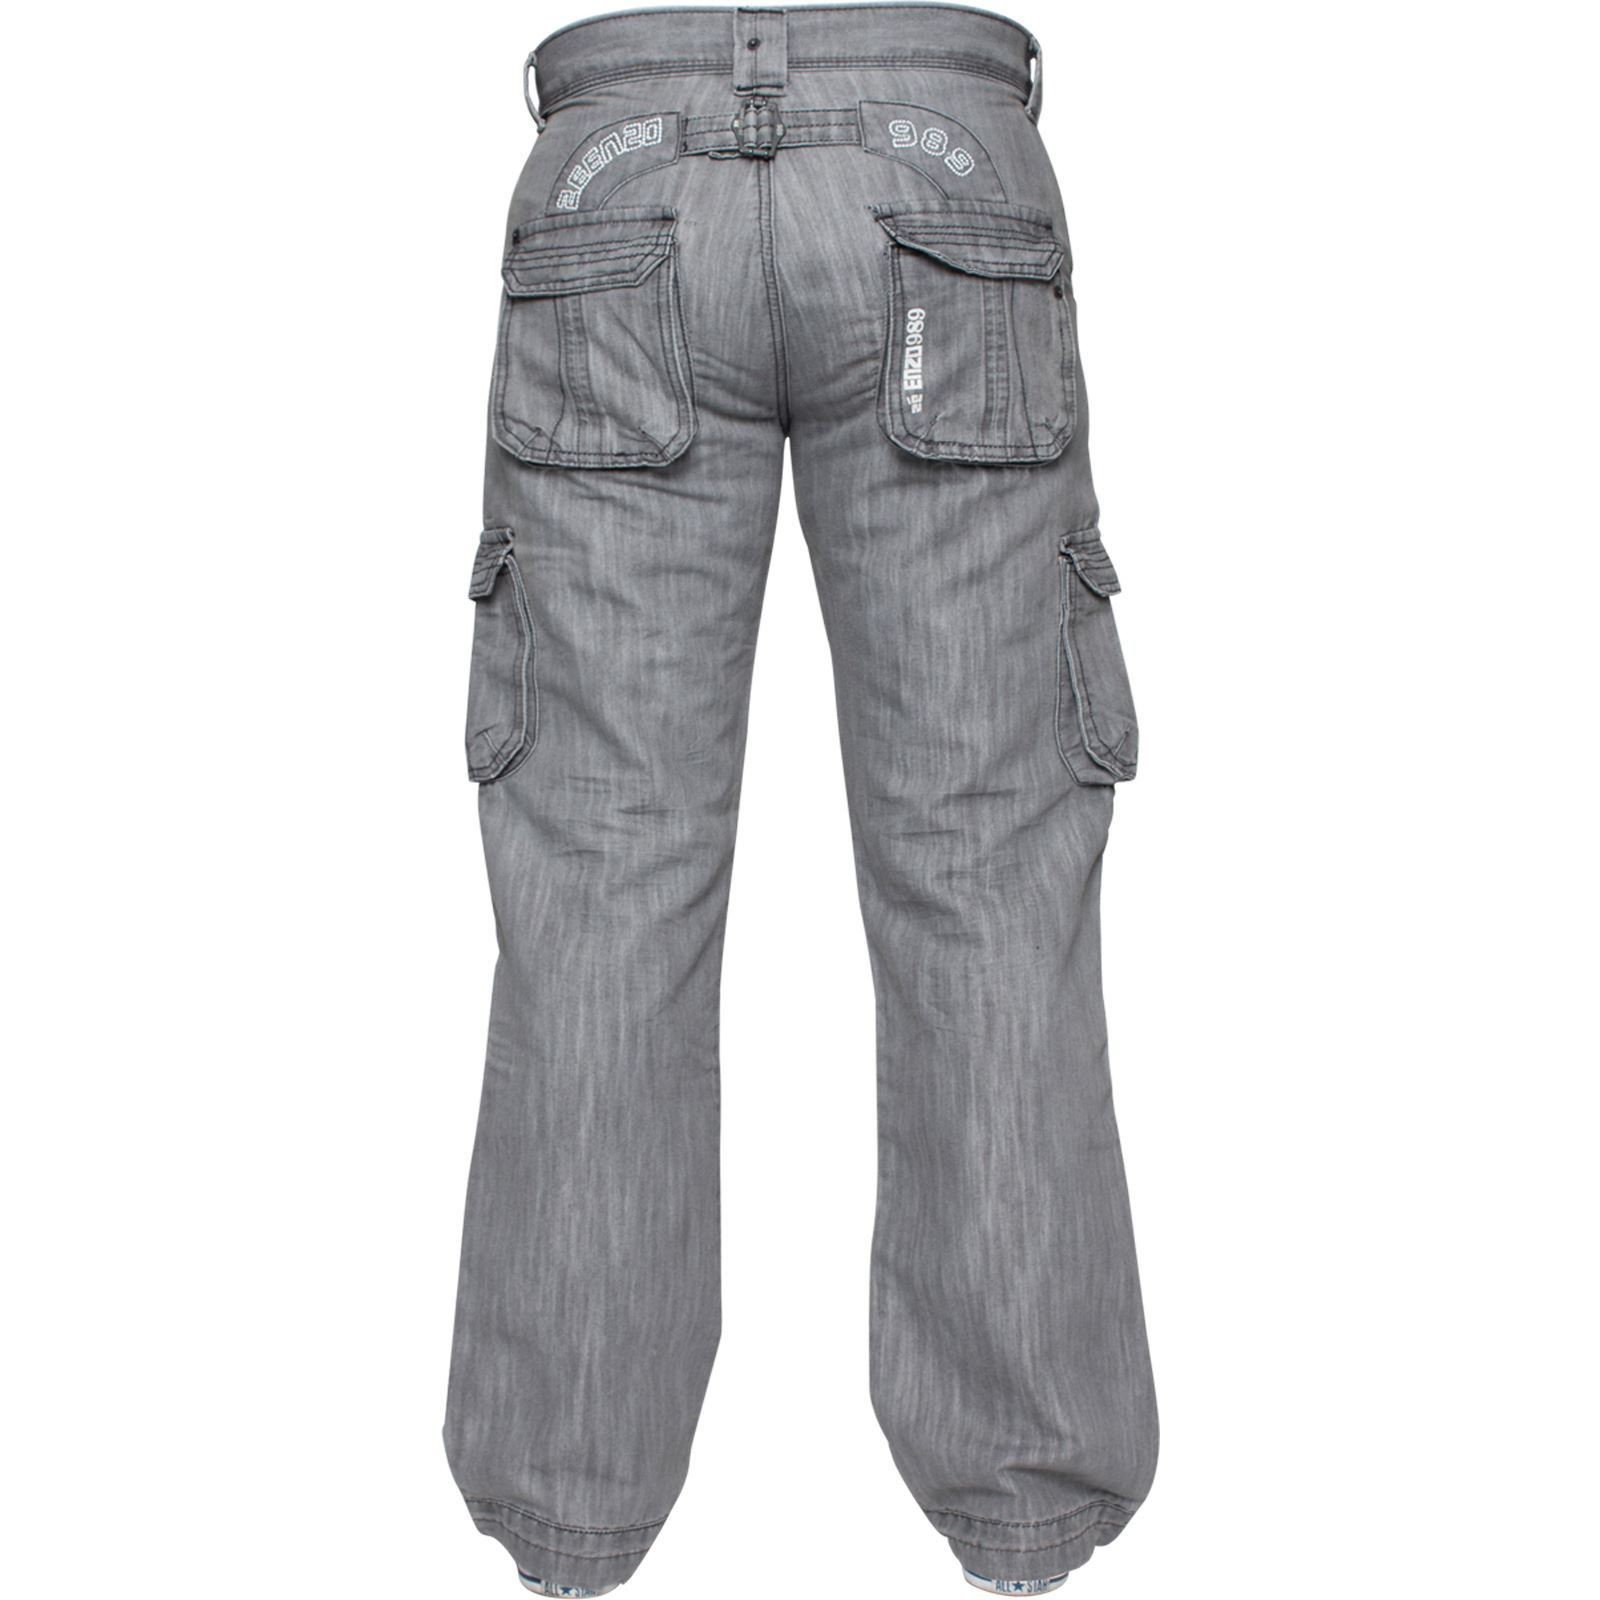 Enzo-Mens-Cargo-Combat-Trousers-Jeans-Work-Casual-Denim-Pants-Big-Tall-All-Waist thumbnail 27